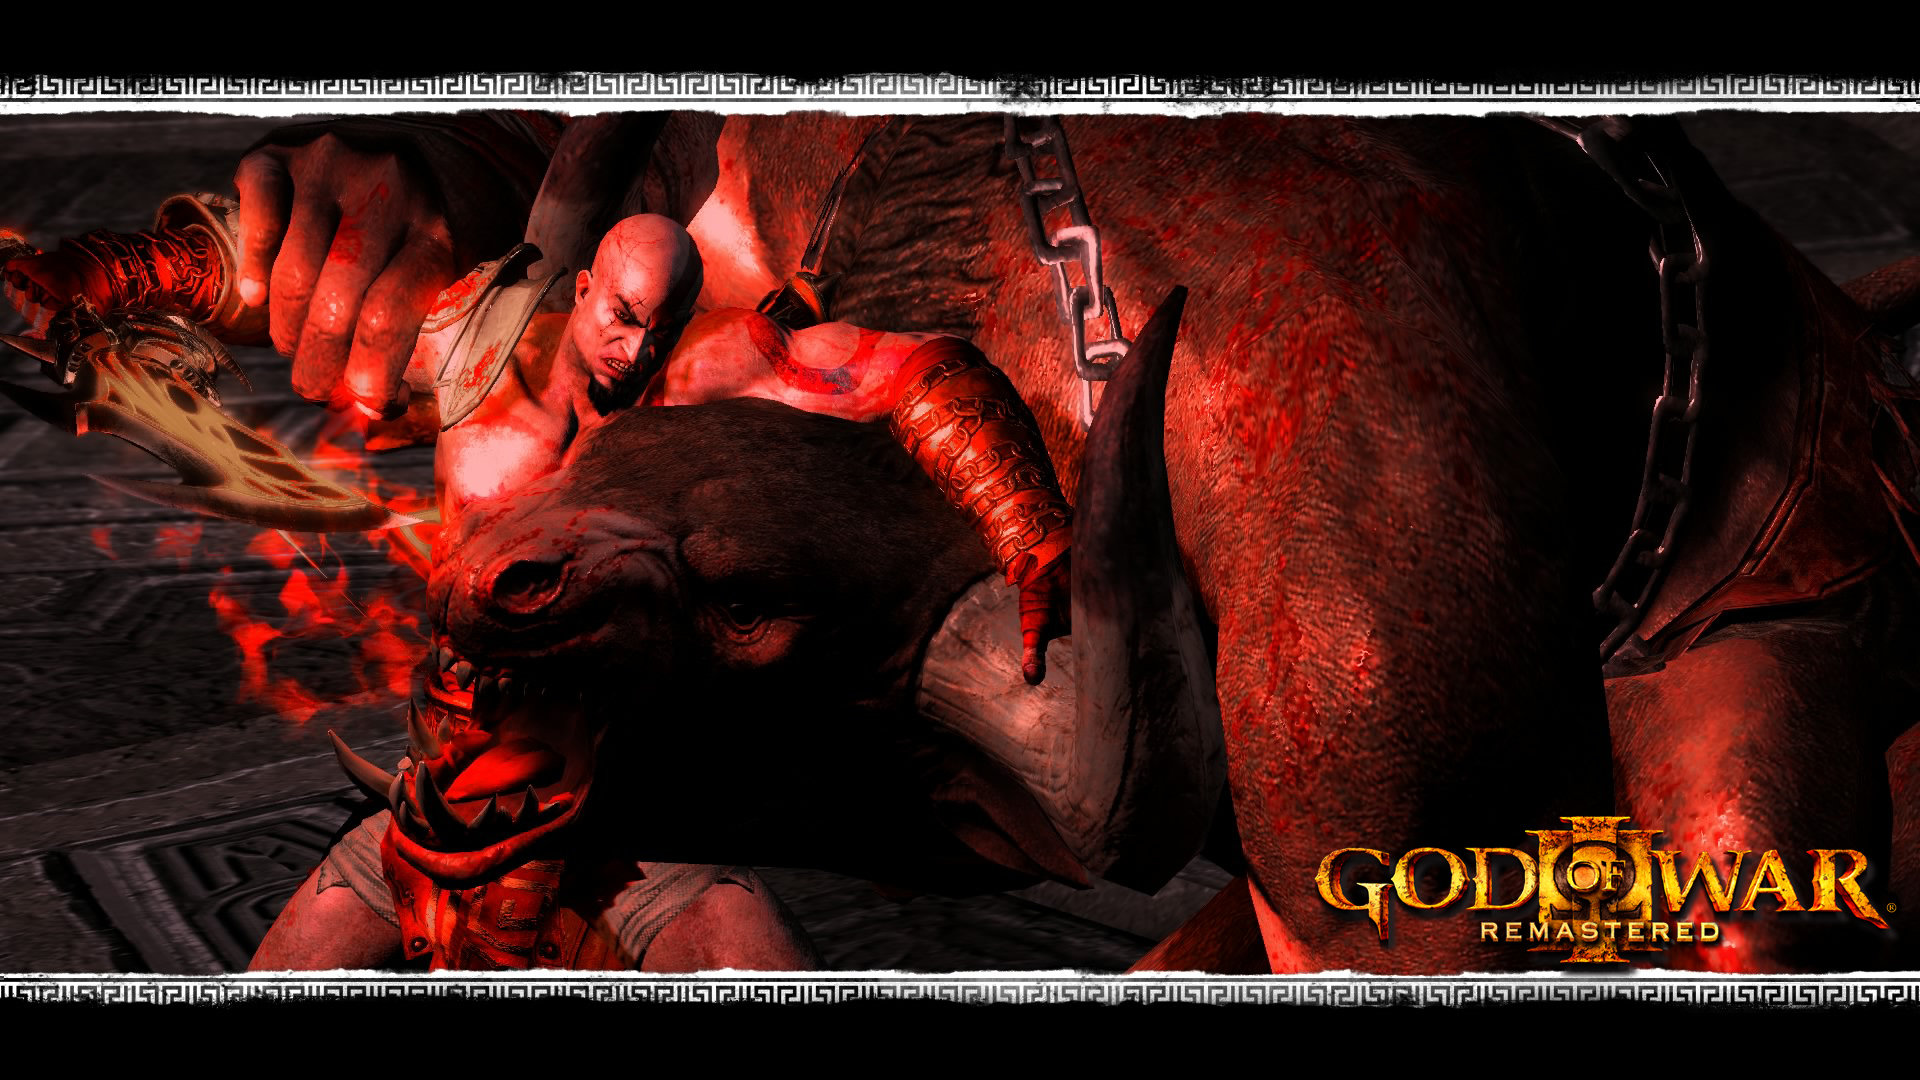 god-of-war-iii-remastered-screen-10-ps4-